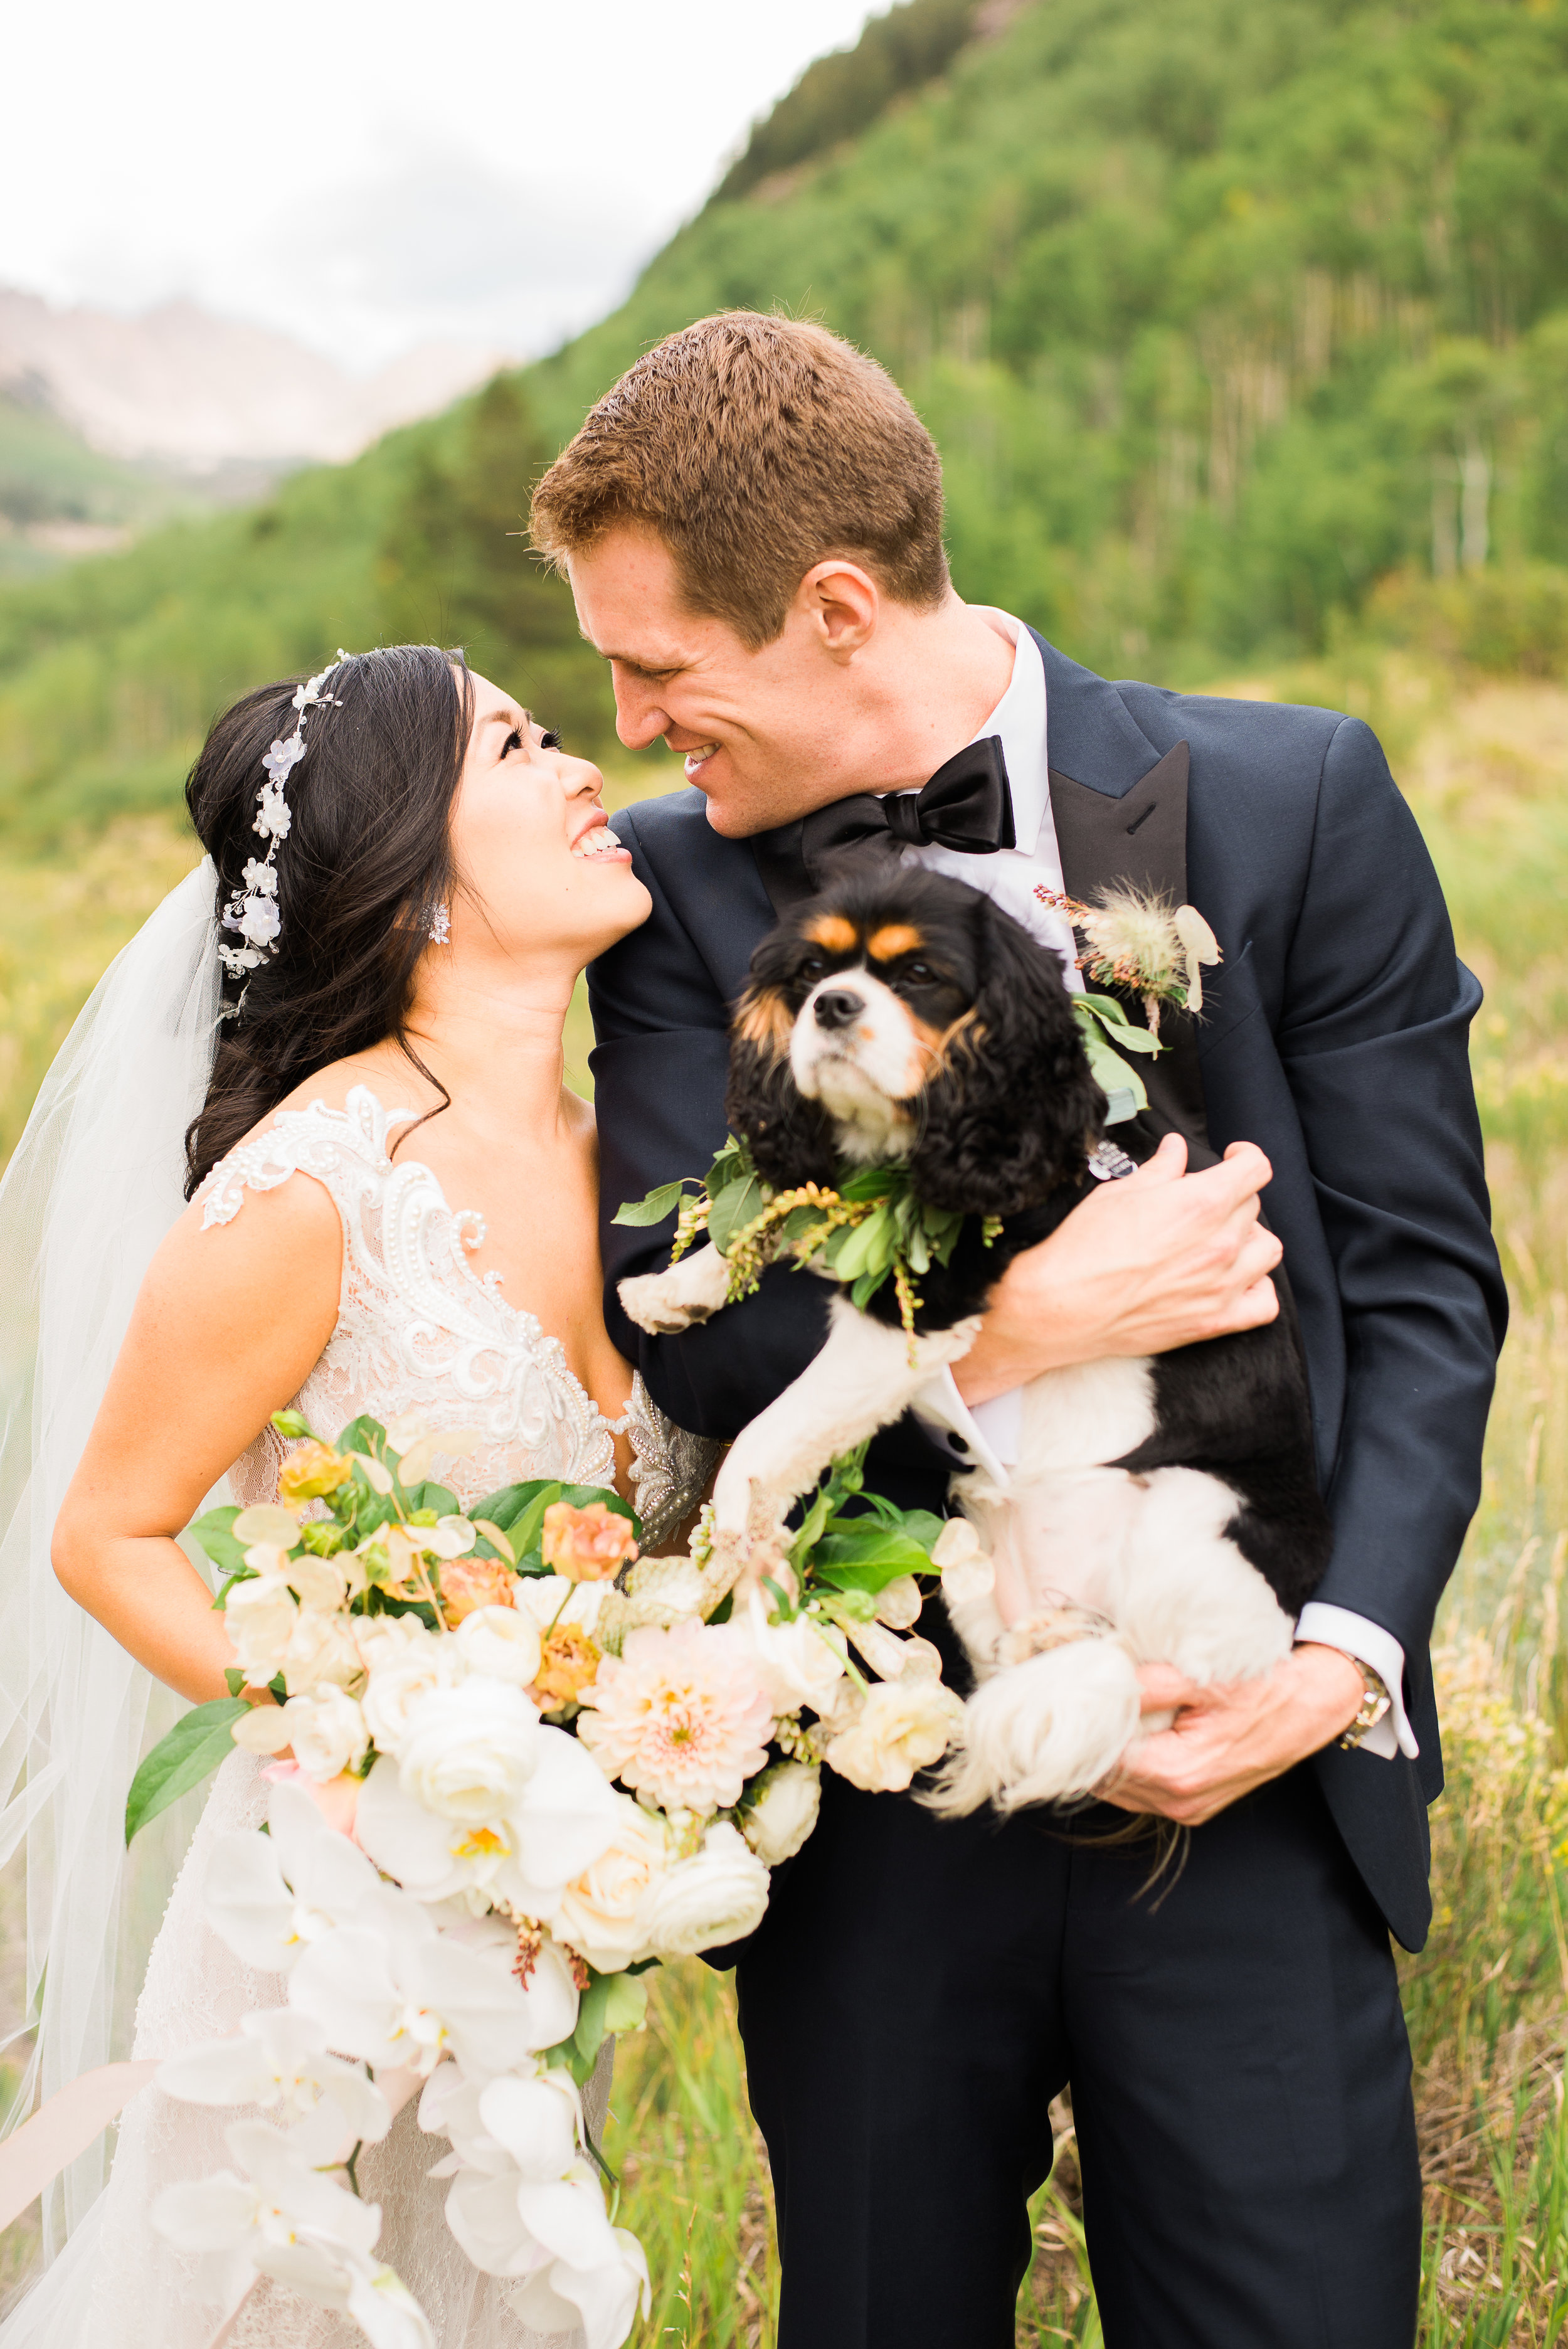 nichole-andrew-vail-mountain-wedding-66.jpg